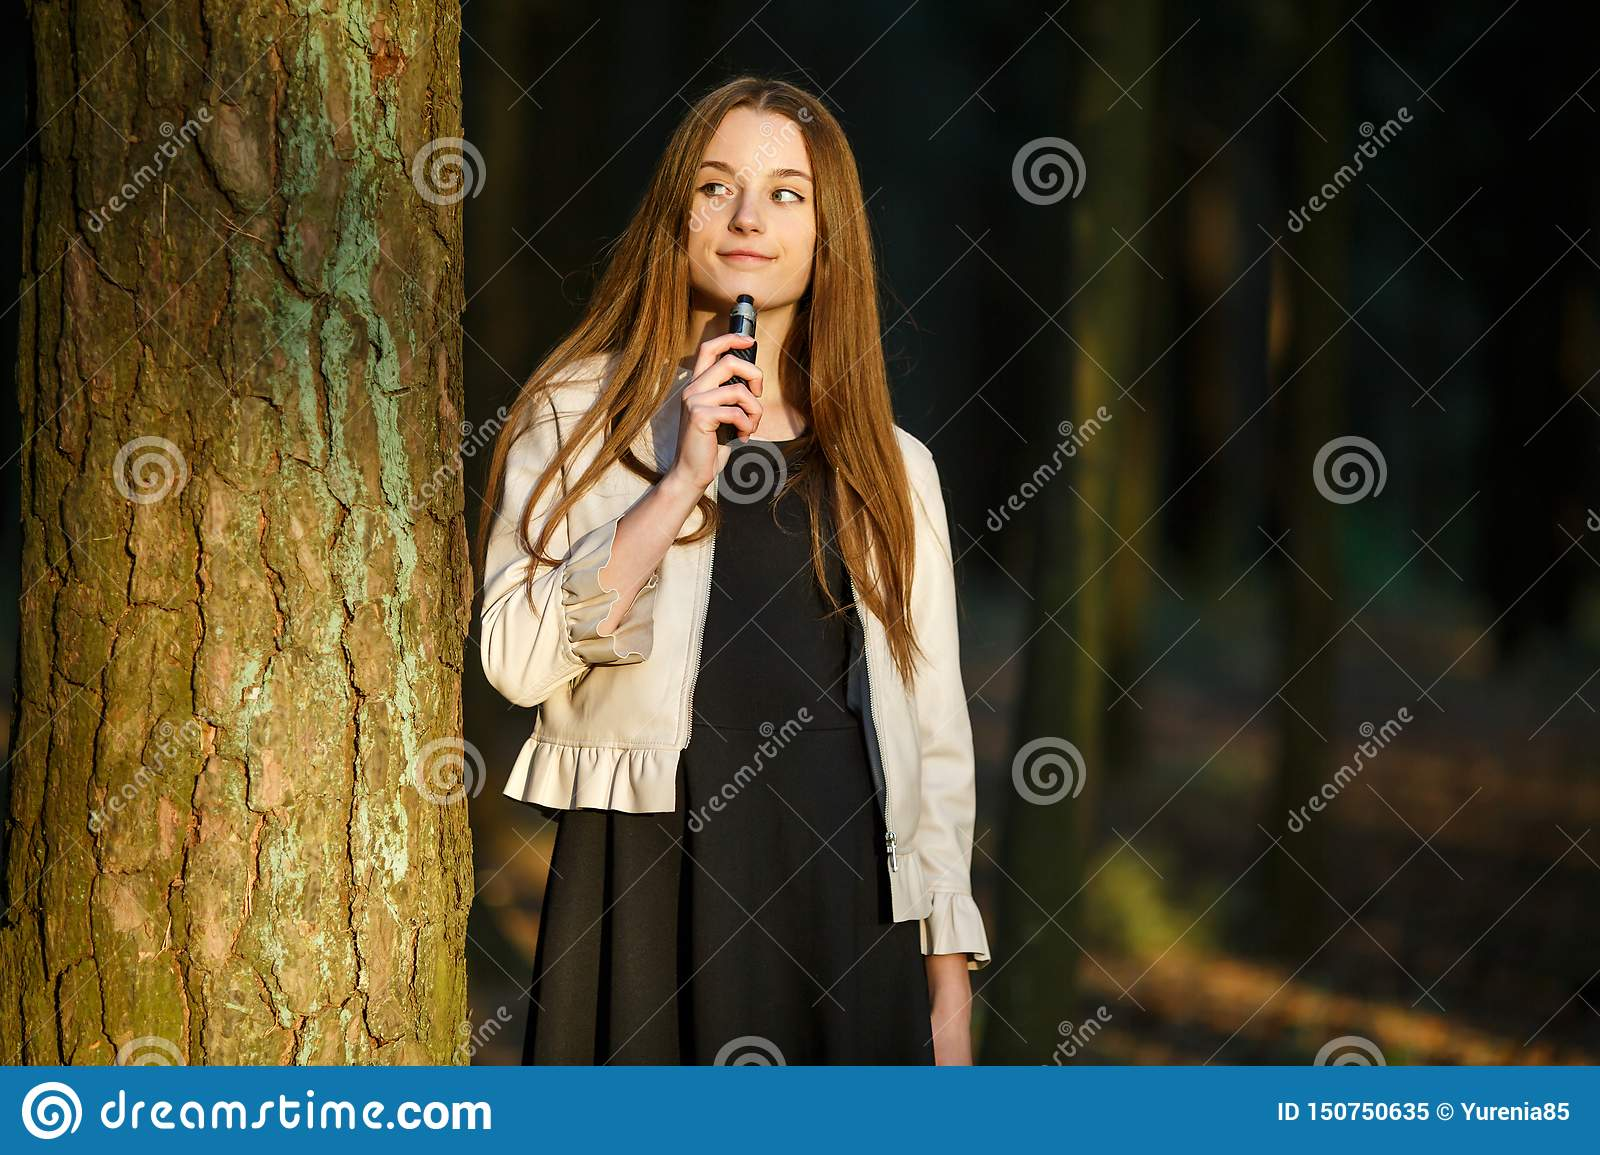 Vape teenager. Young cute girl in casual clothes smokes an electronic cigarette outdoors in the forest at sunset in summer.